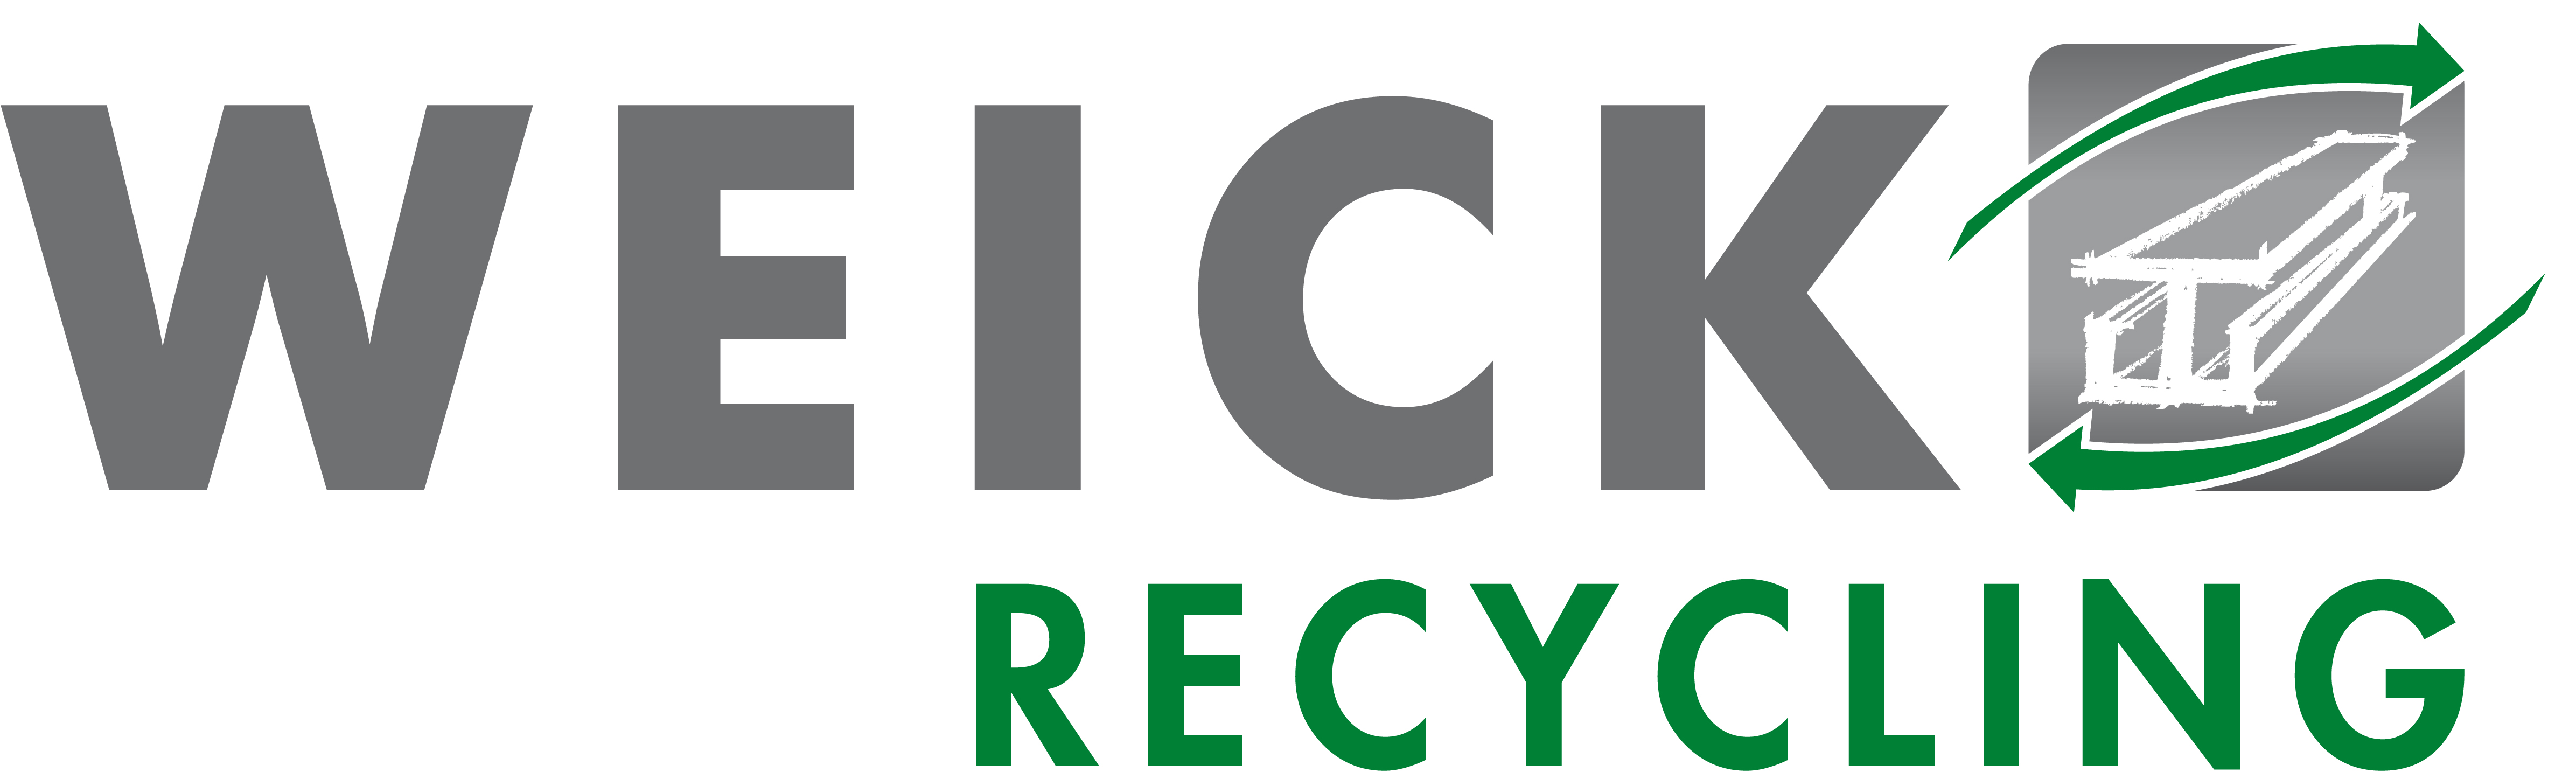 WEICK Recycling GmbH